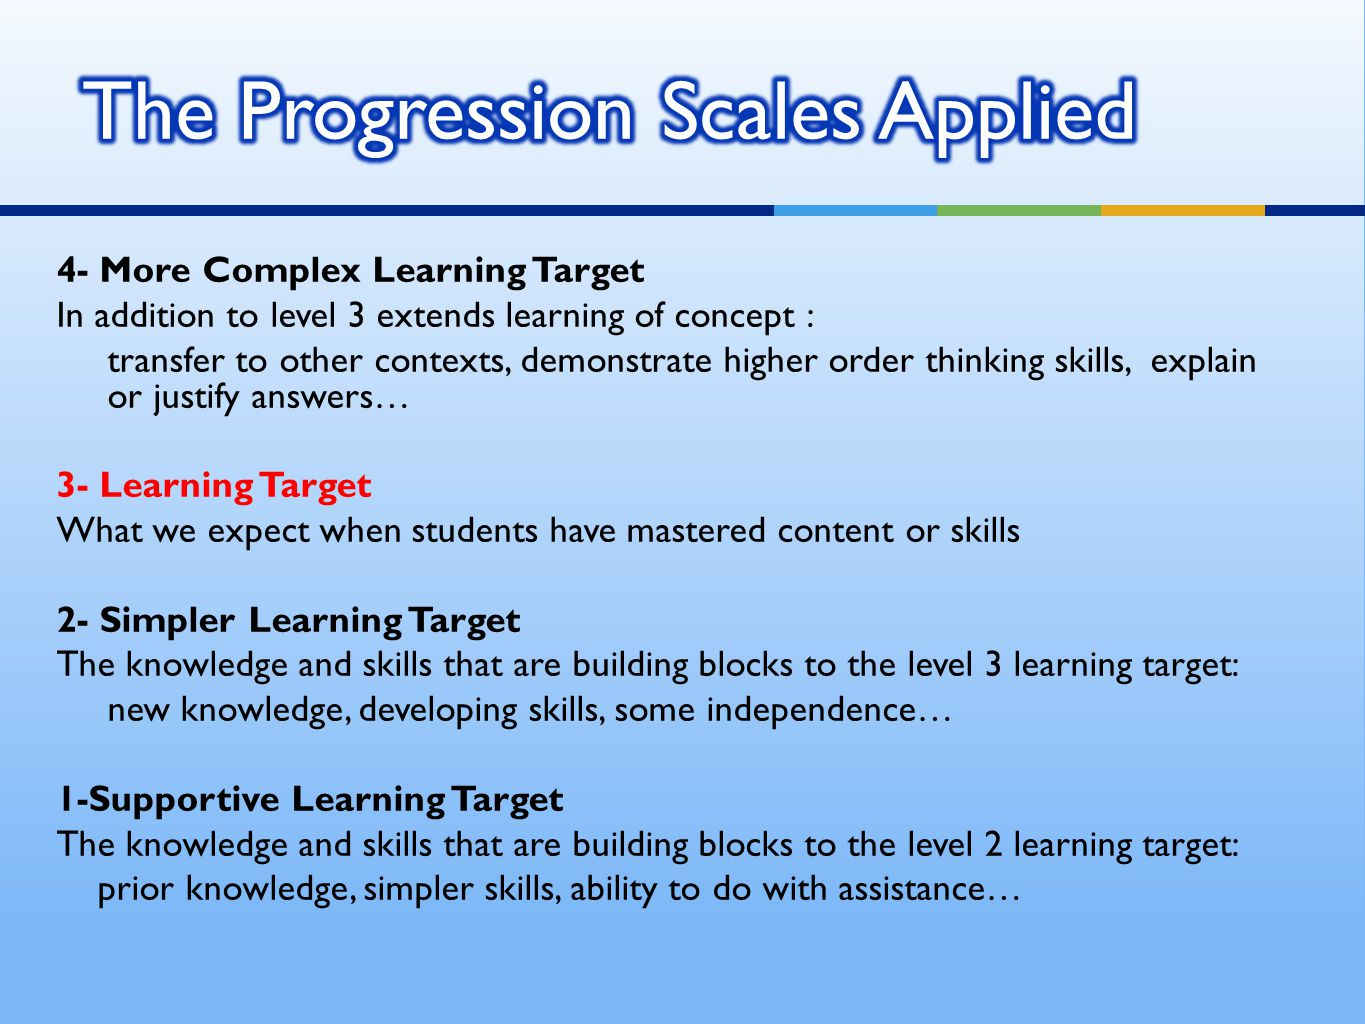 4- More Complex Learning Target In addition to level 3 extends learning of concept : transfer to other contexts, demonstrate higher order thinking skills, explain or justify answers… 3- Learning Target What we expect when students have mastered content or skills 2- Simpler Learning Target The knowledge and skills that are building blocks to the level 3 learning target: new knowledge, developing skills, some independence… 1-Supportive Learning Target The knowledge and skills that are building blocks to the level 2 learning target: prior knowledge, simpler skills, ability to do with assistance…